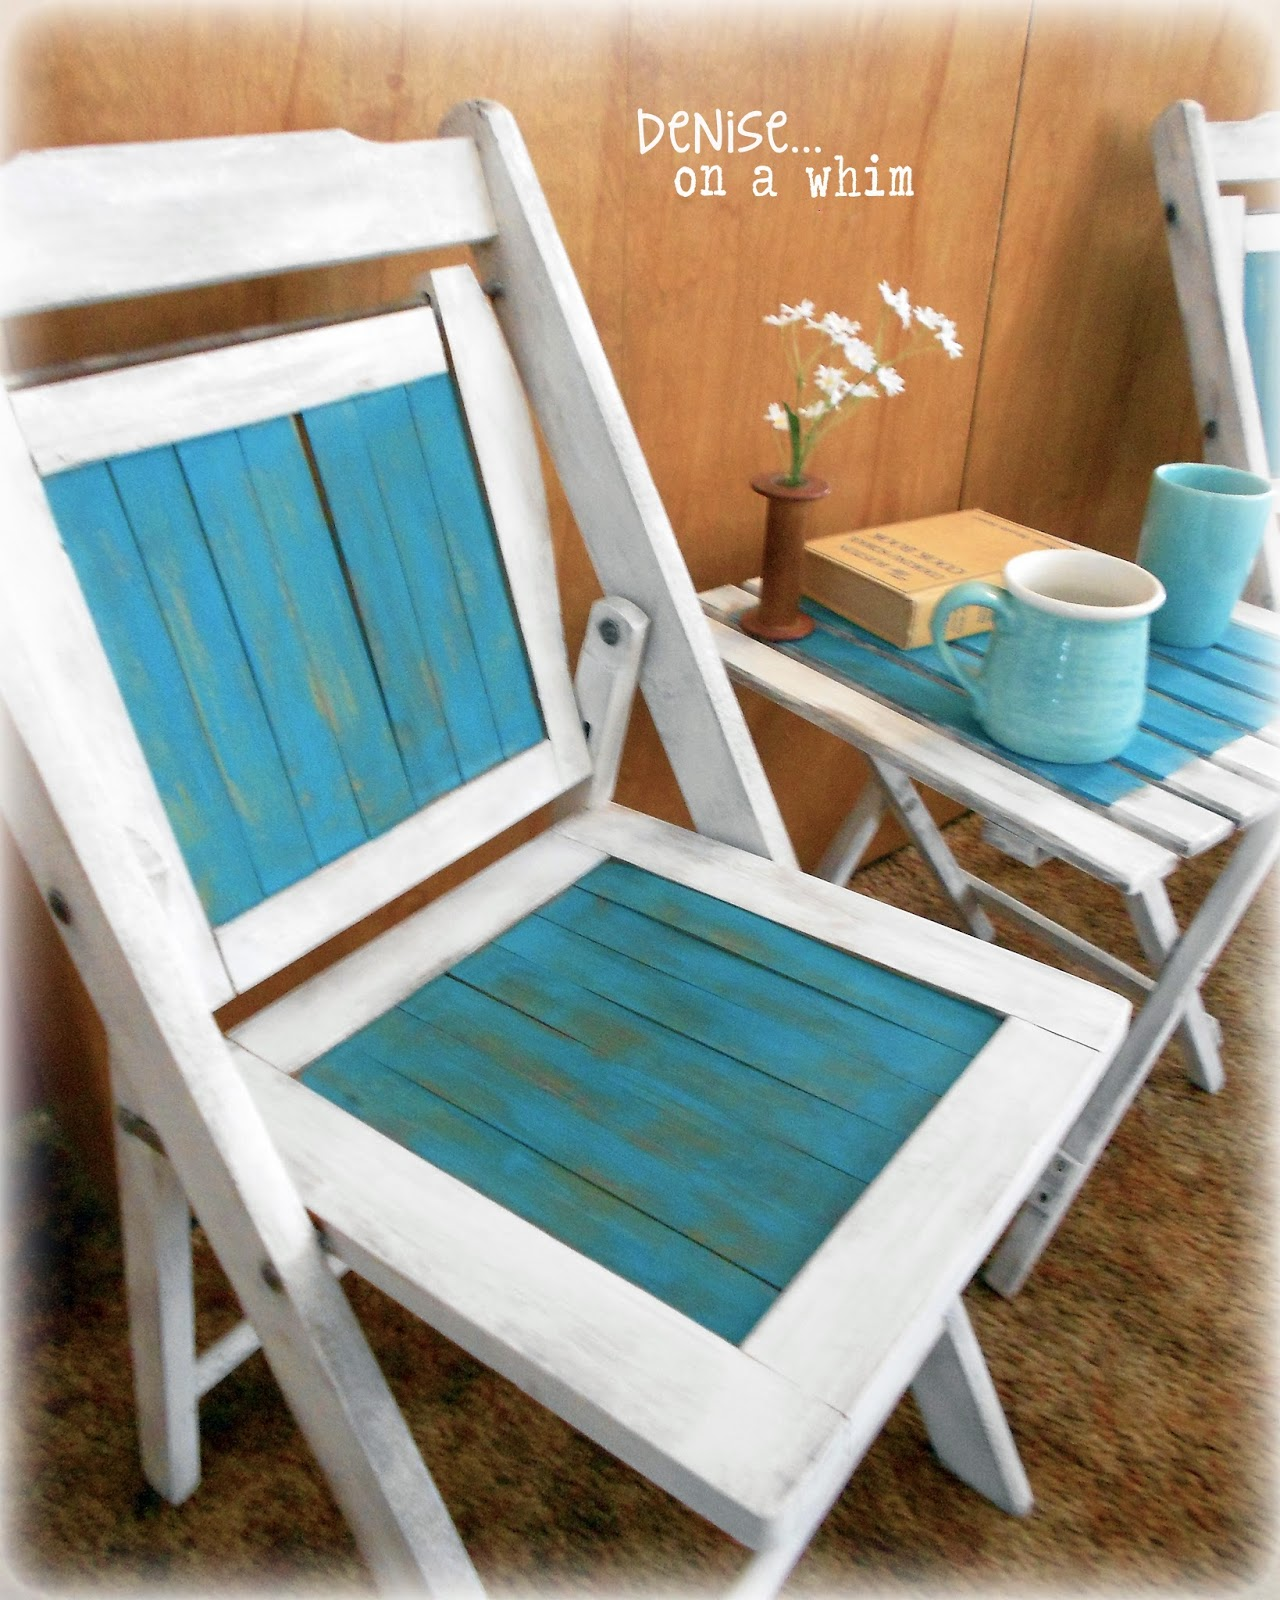 Vintage wooden folding chair painted in vintage white and peacock via http://deniseonawhim.blogspot.com